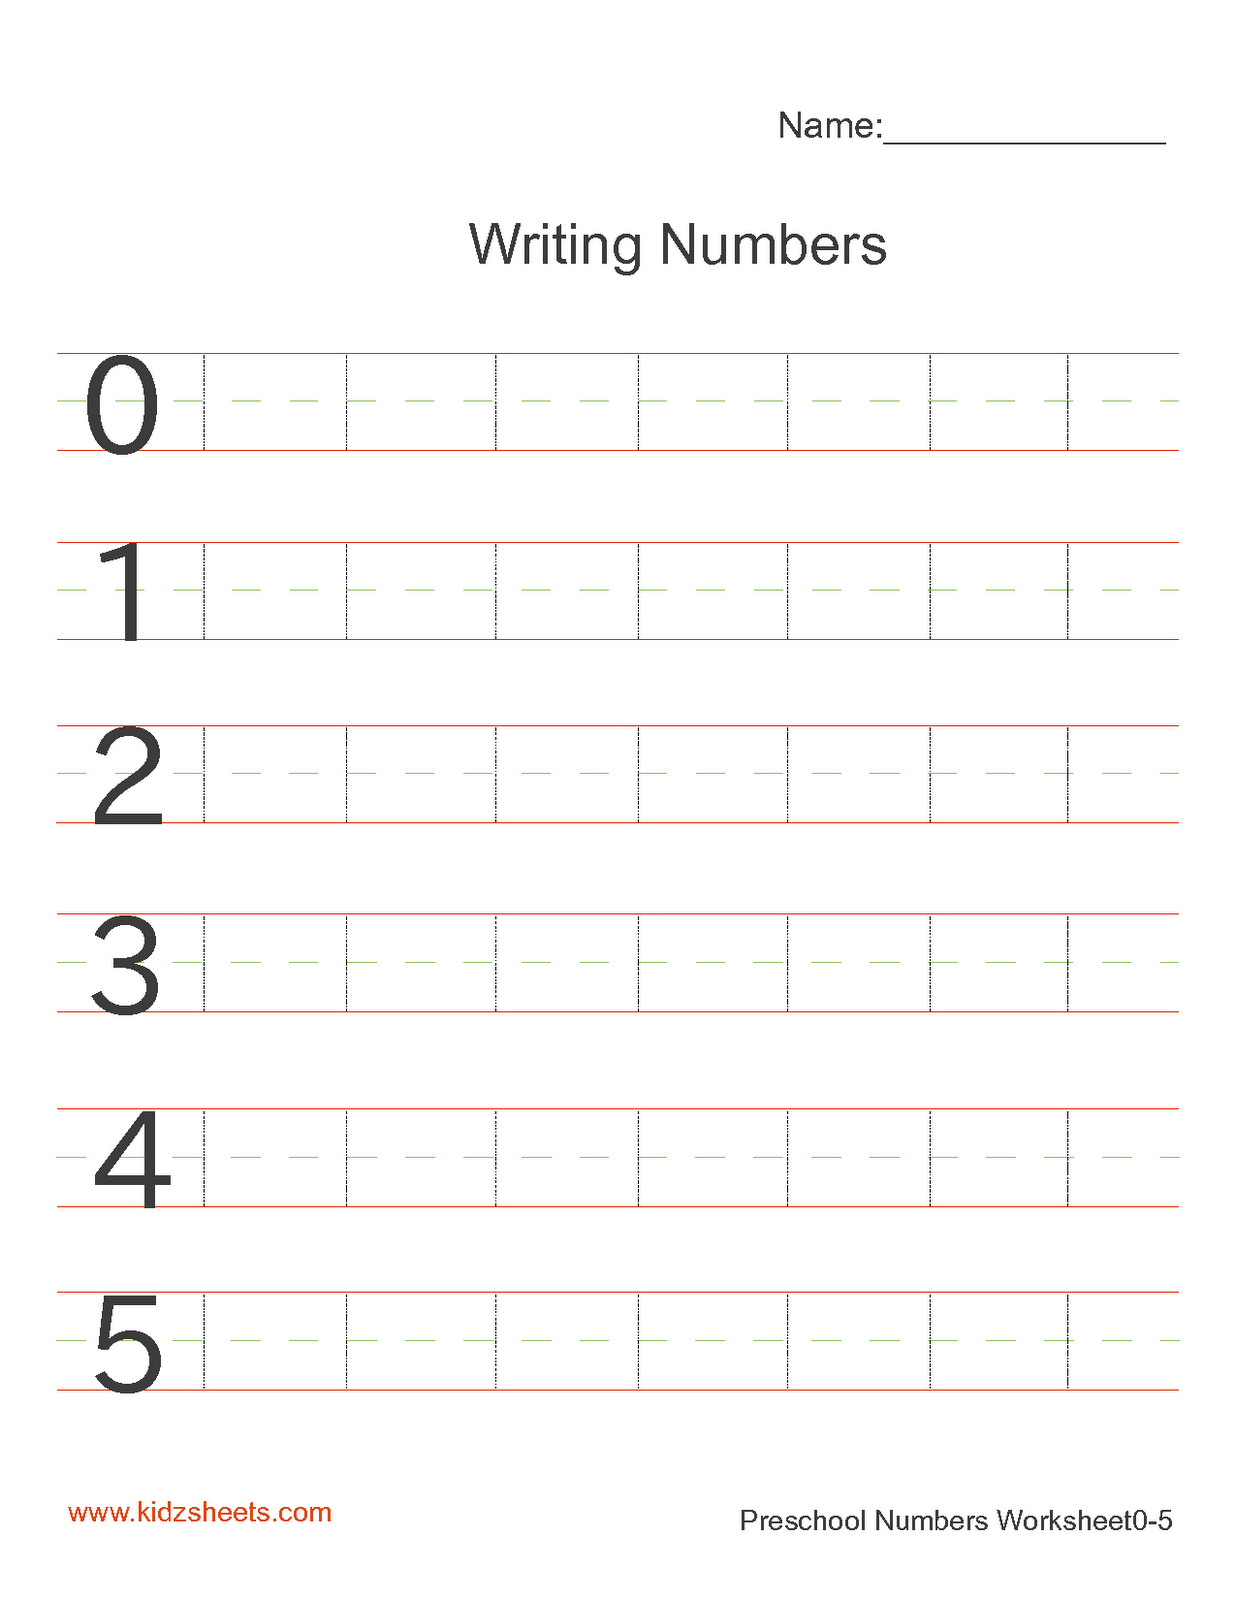 Kidz Worksheets Preschool Writing Numbers Worksheet1 – Preschool Numbers Worksheets